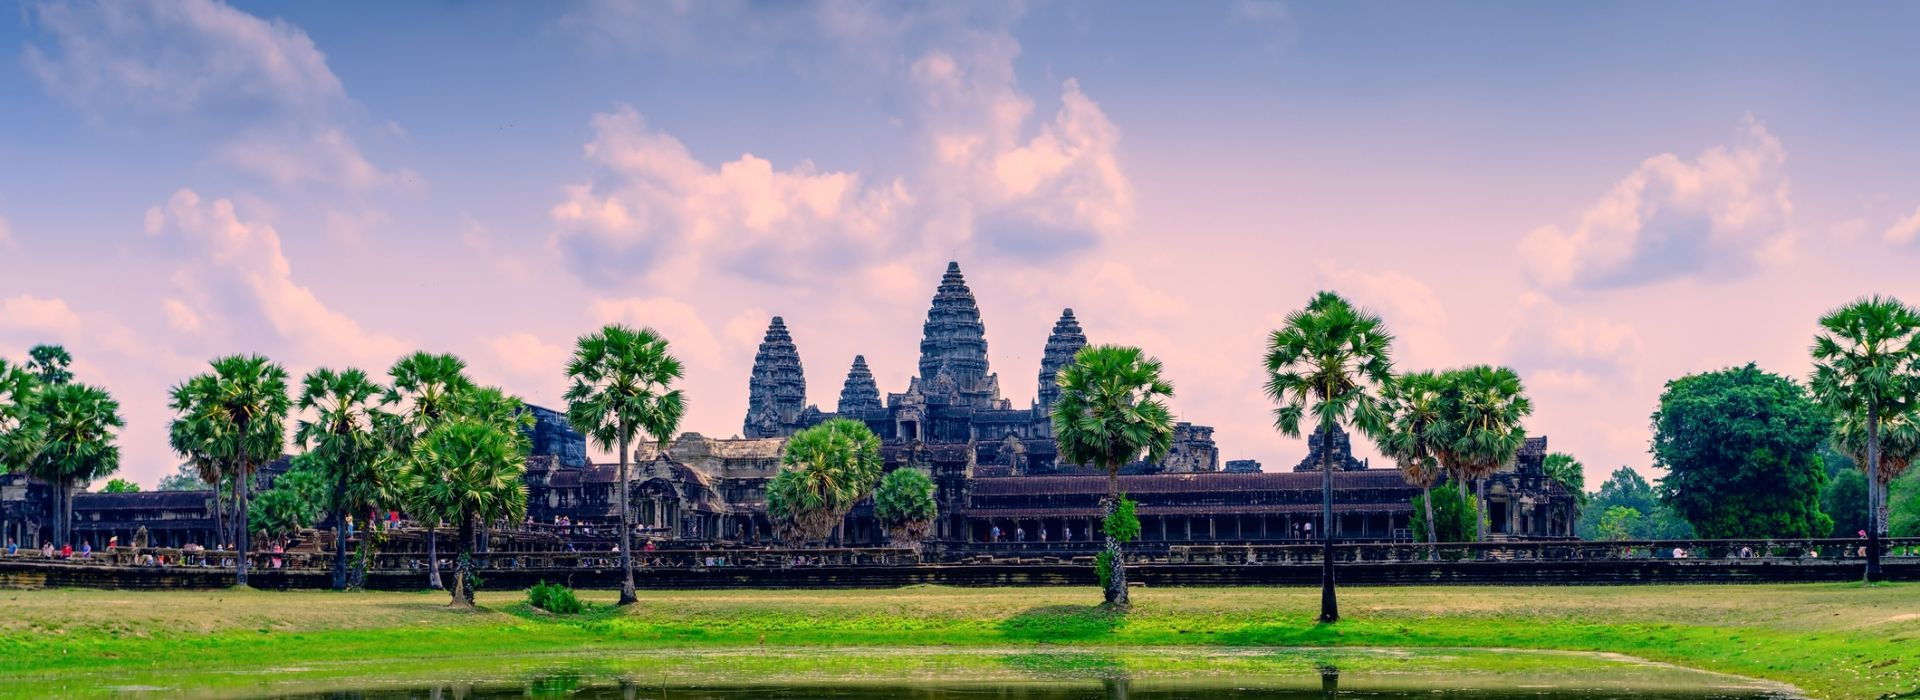 City sightseeing Tours in Cambodia